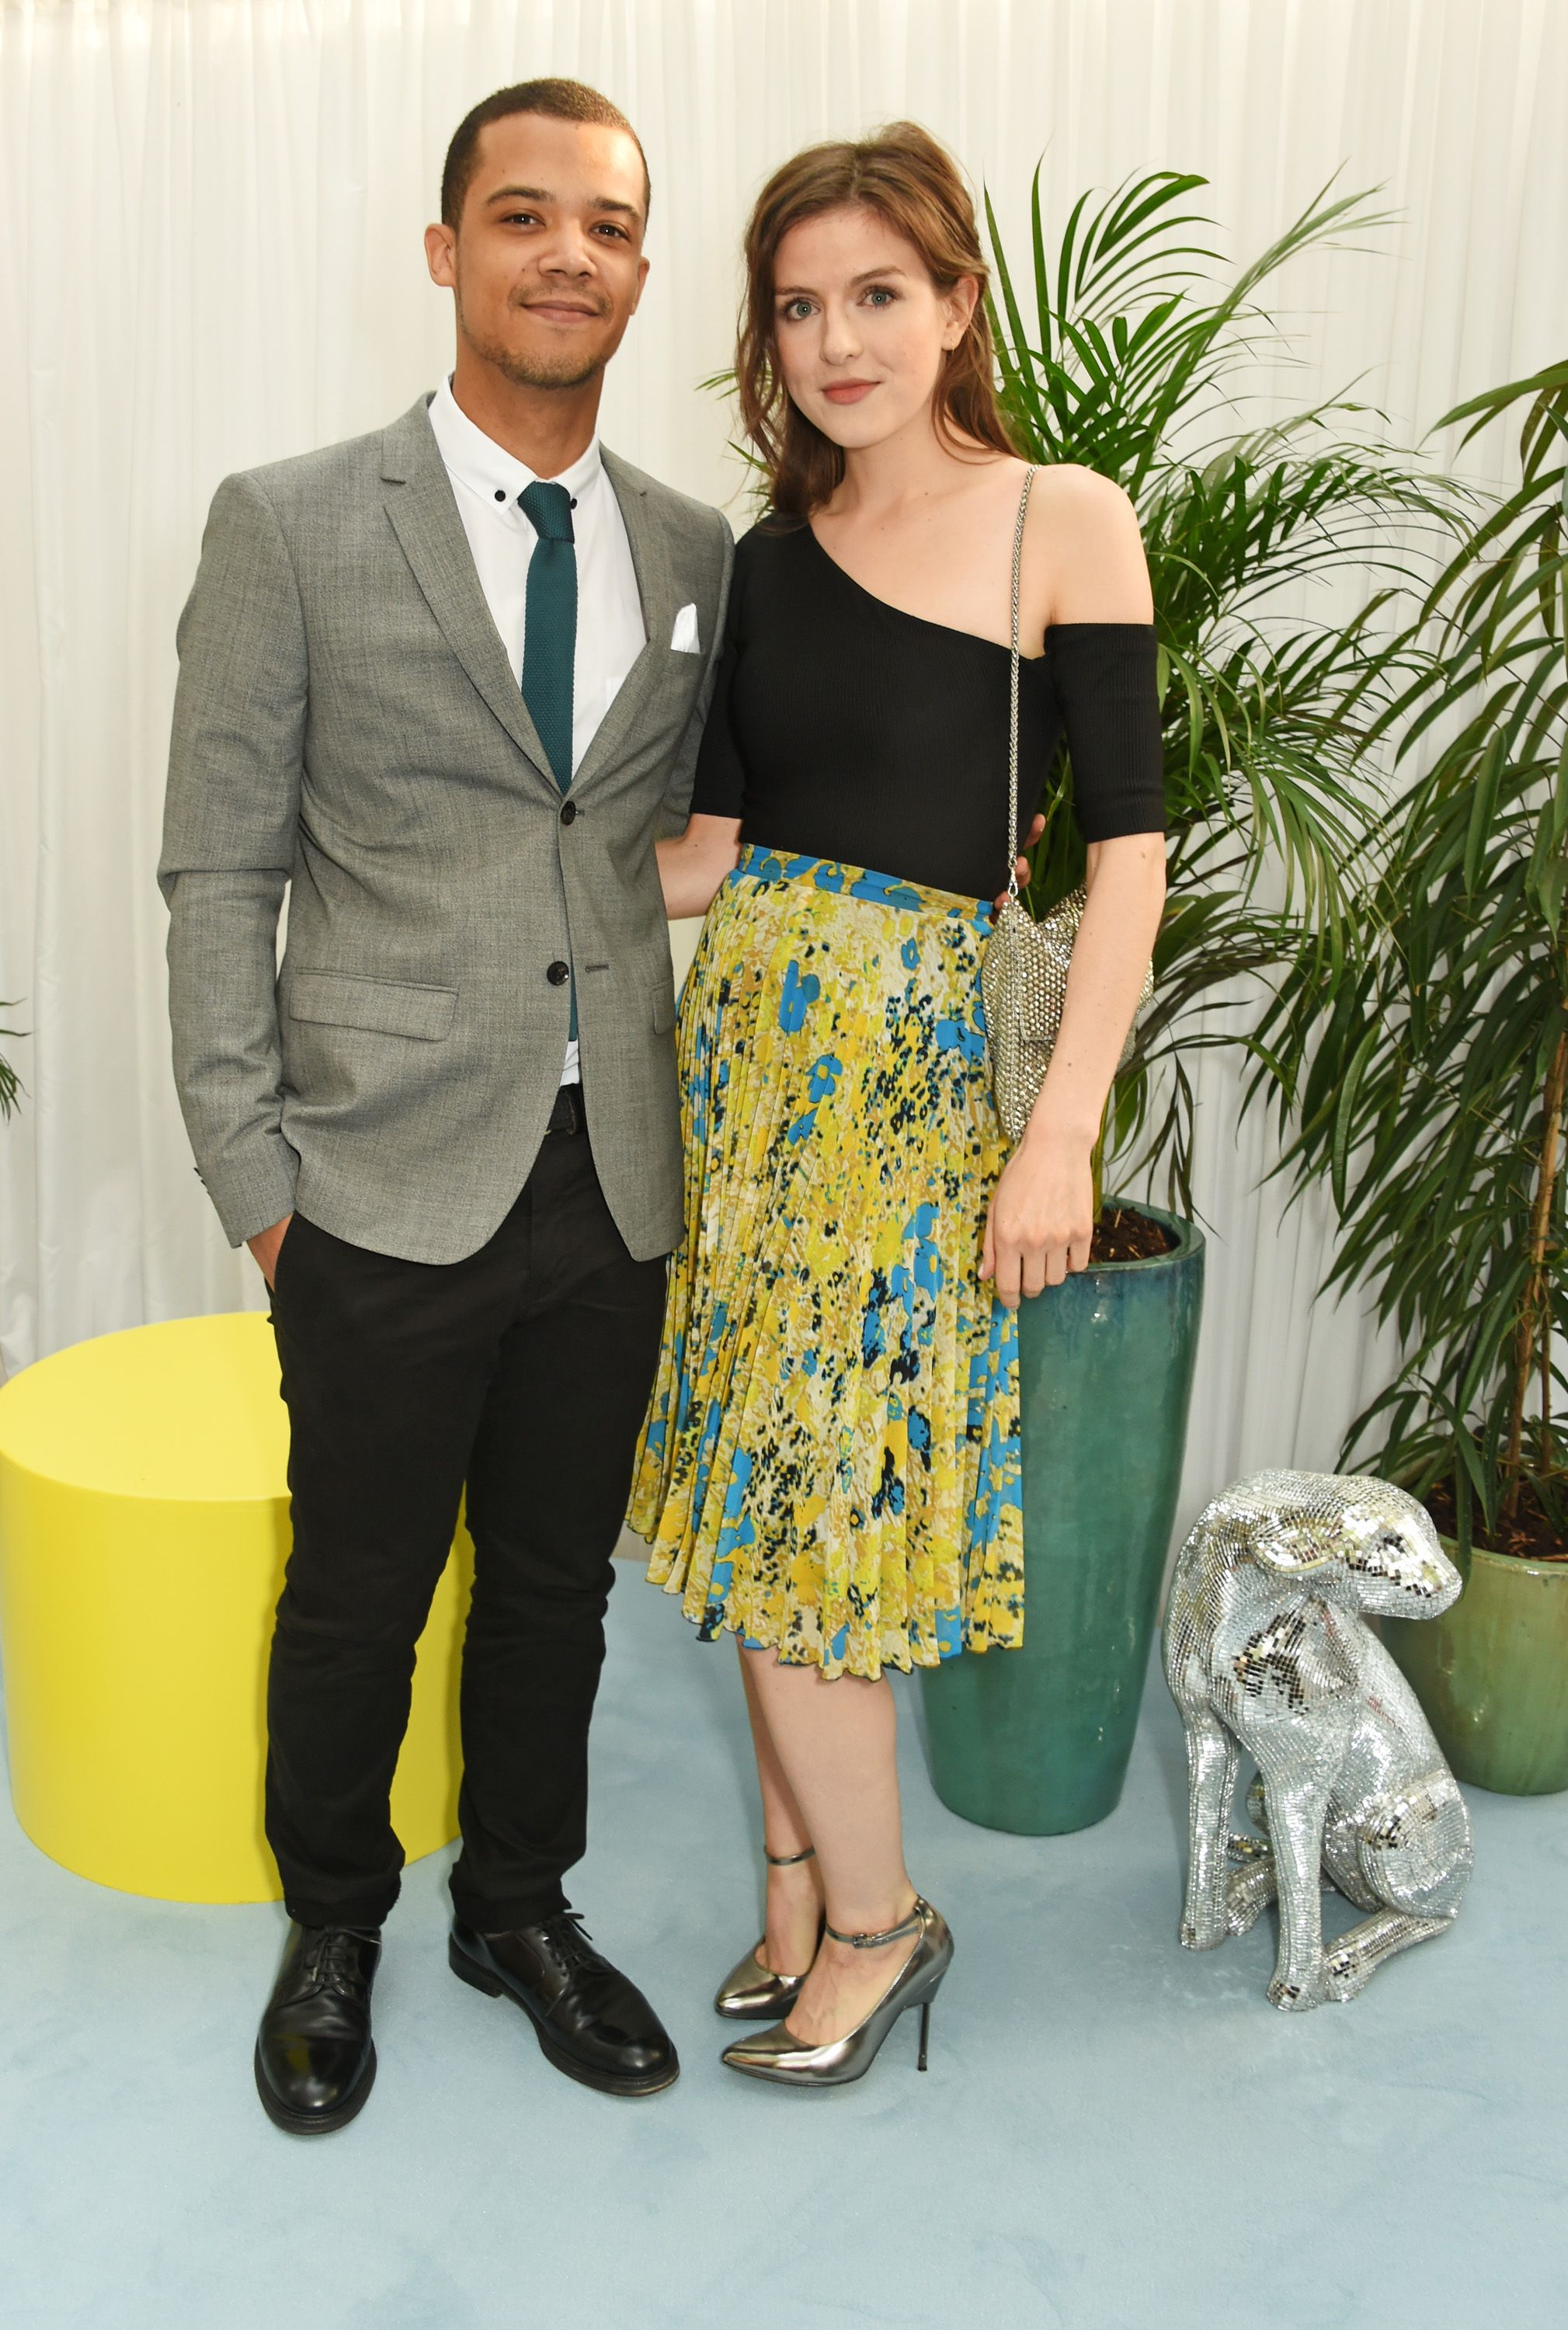 Jacob Anderson (Grey Worm) and Aisling Loftus This pair have been dating for more than six years.